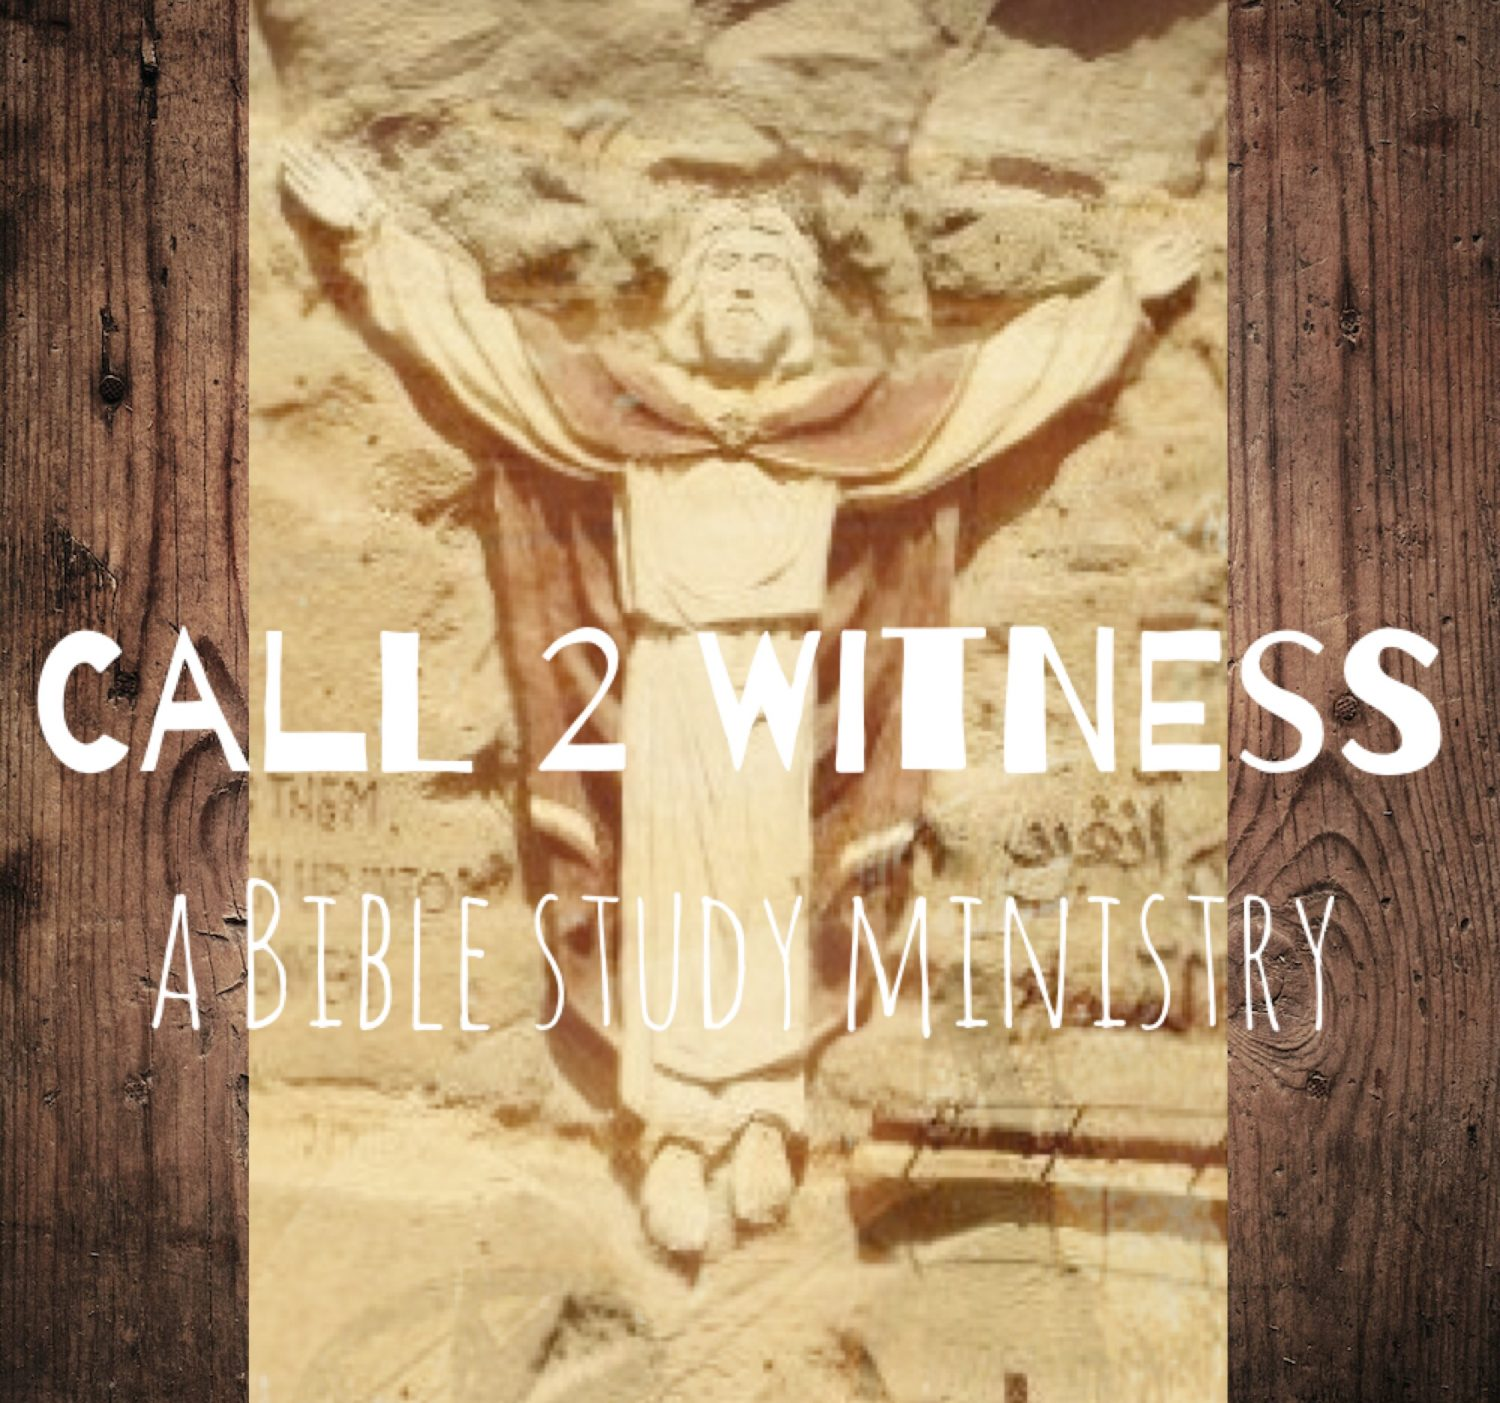 cropped-call-2-witness-logo.jpg